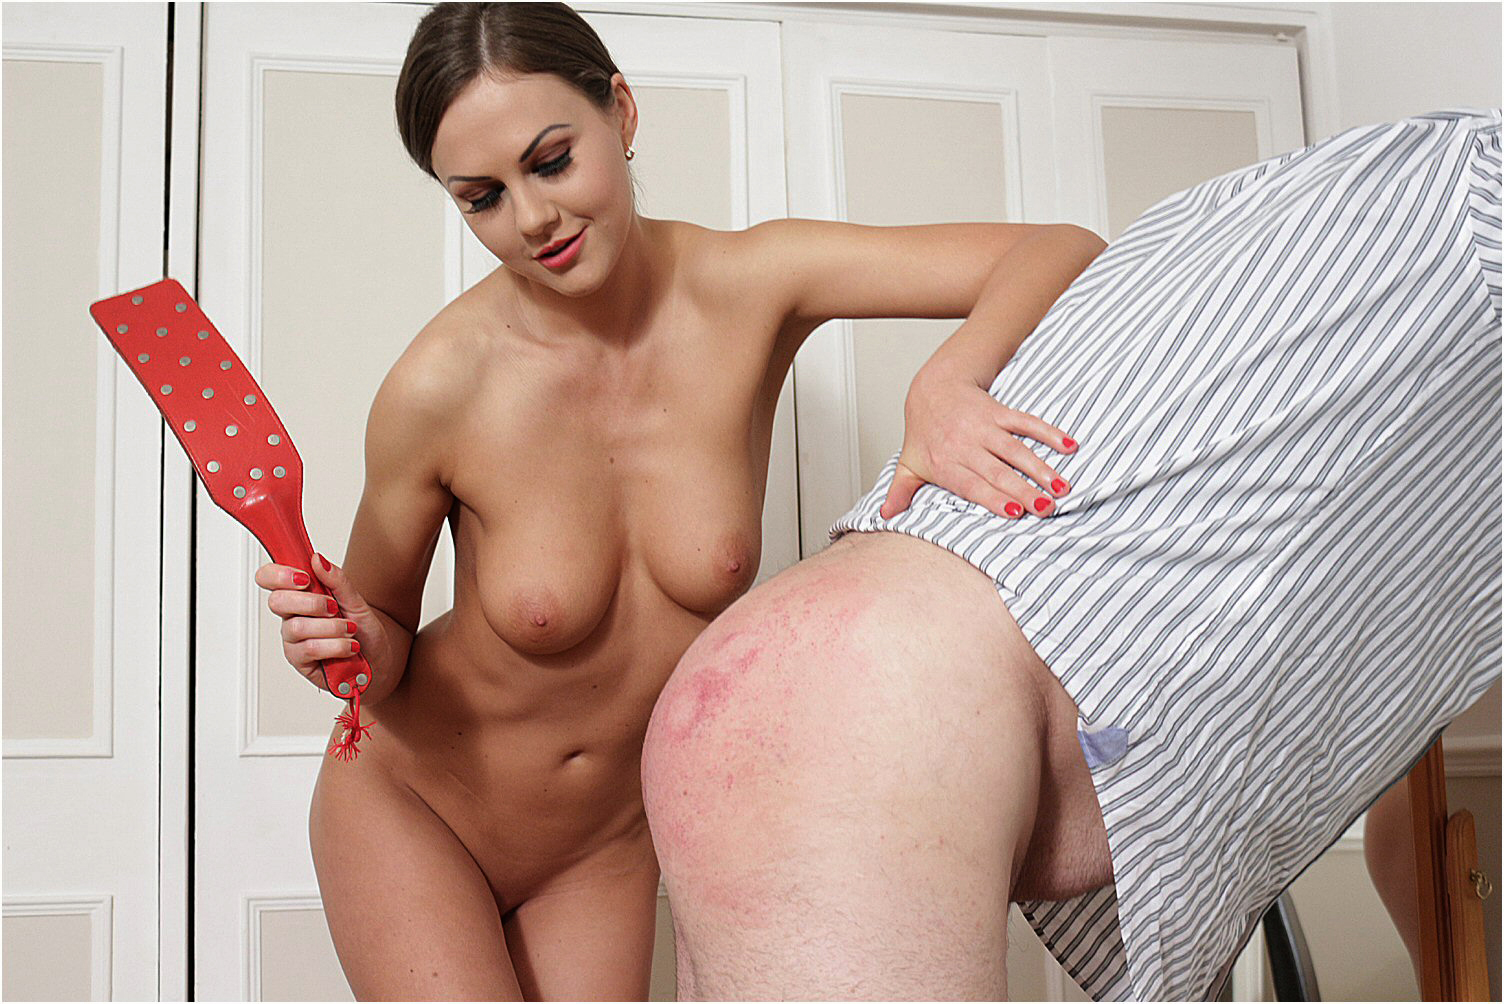 Spanked by a woman